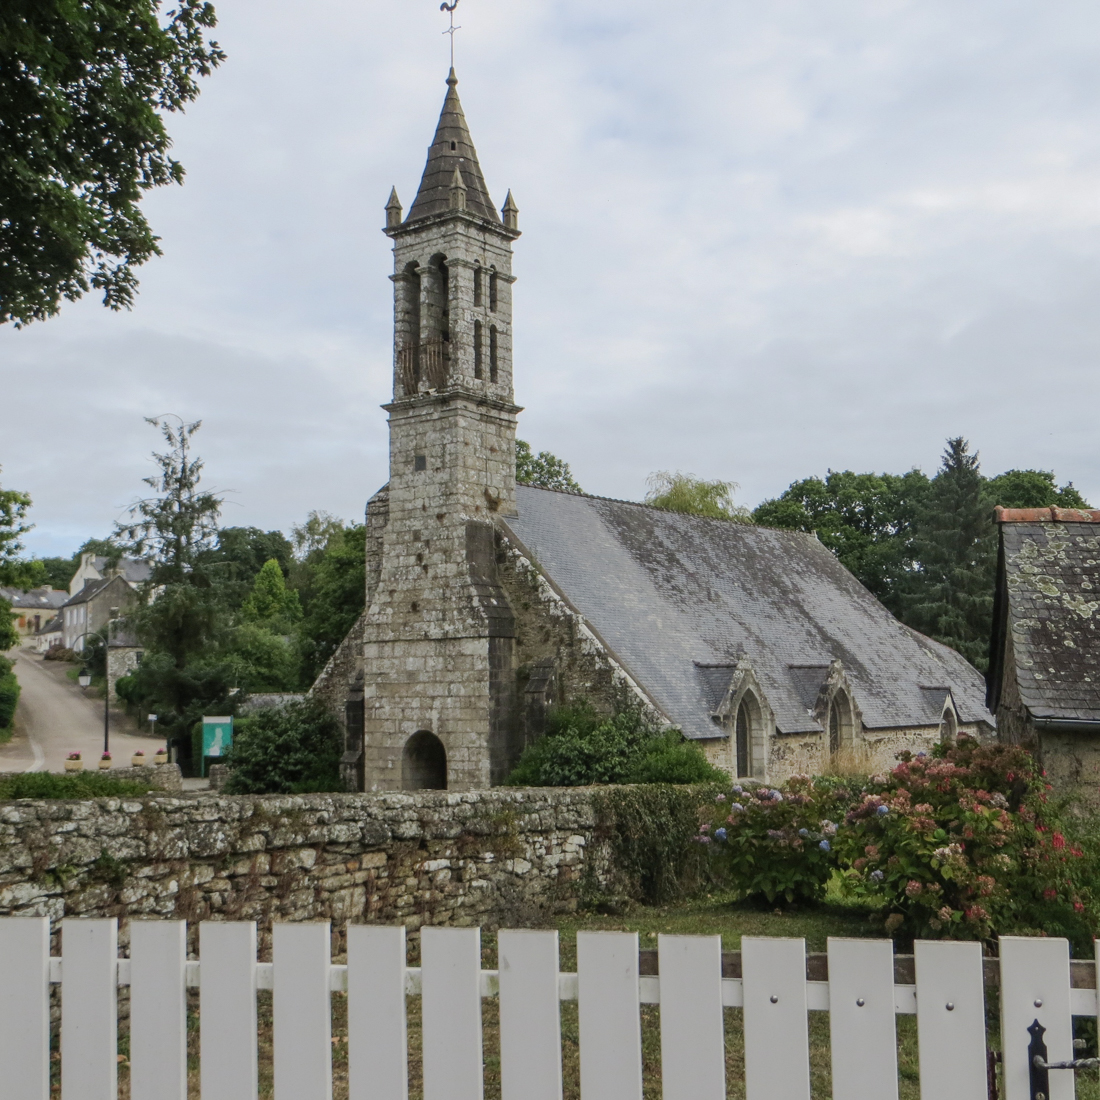 The Church of Bonne Nouvelle at Locmaria Berrien